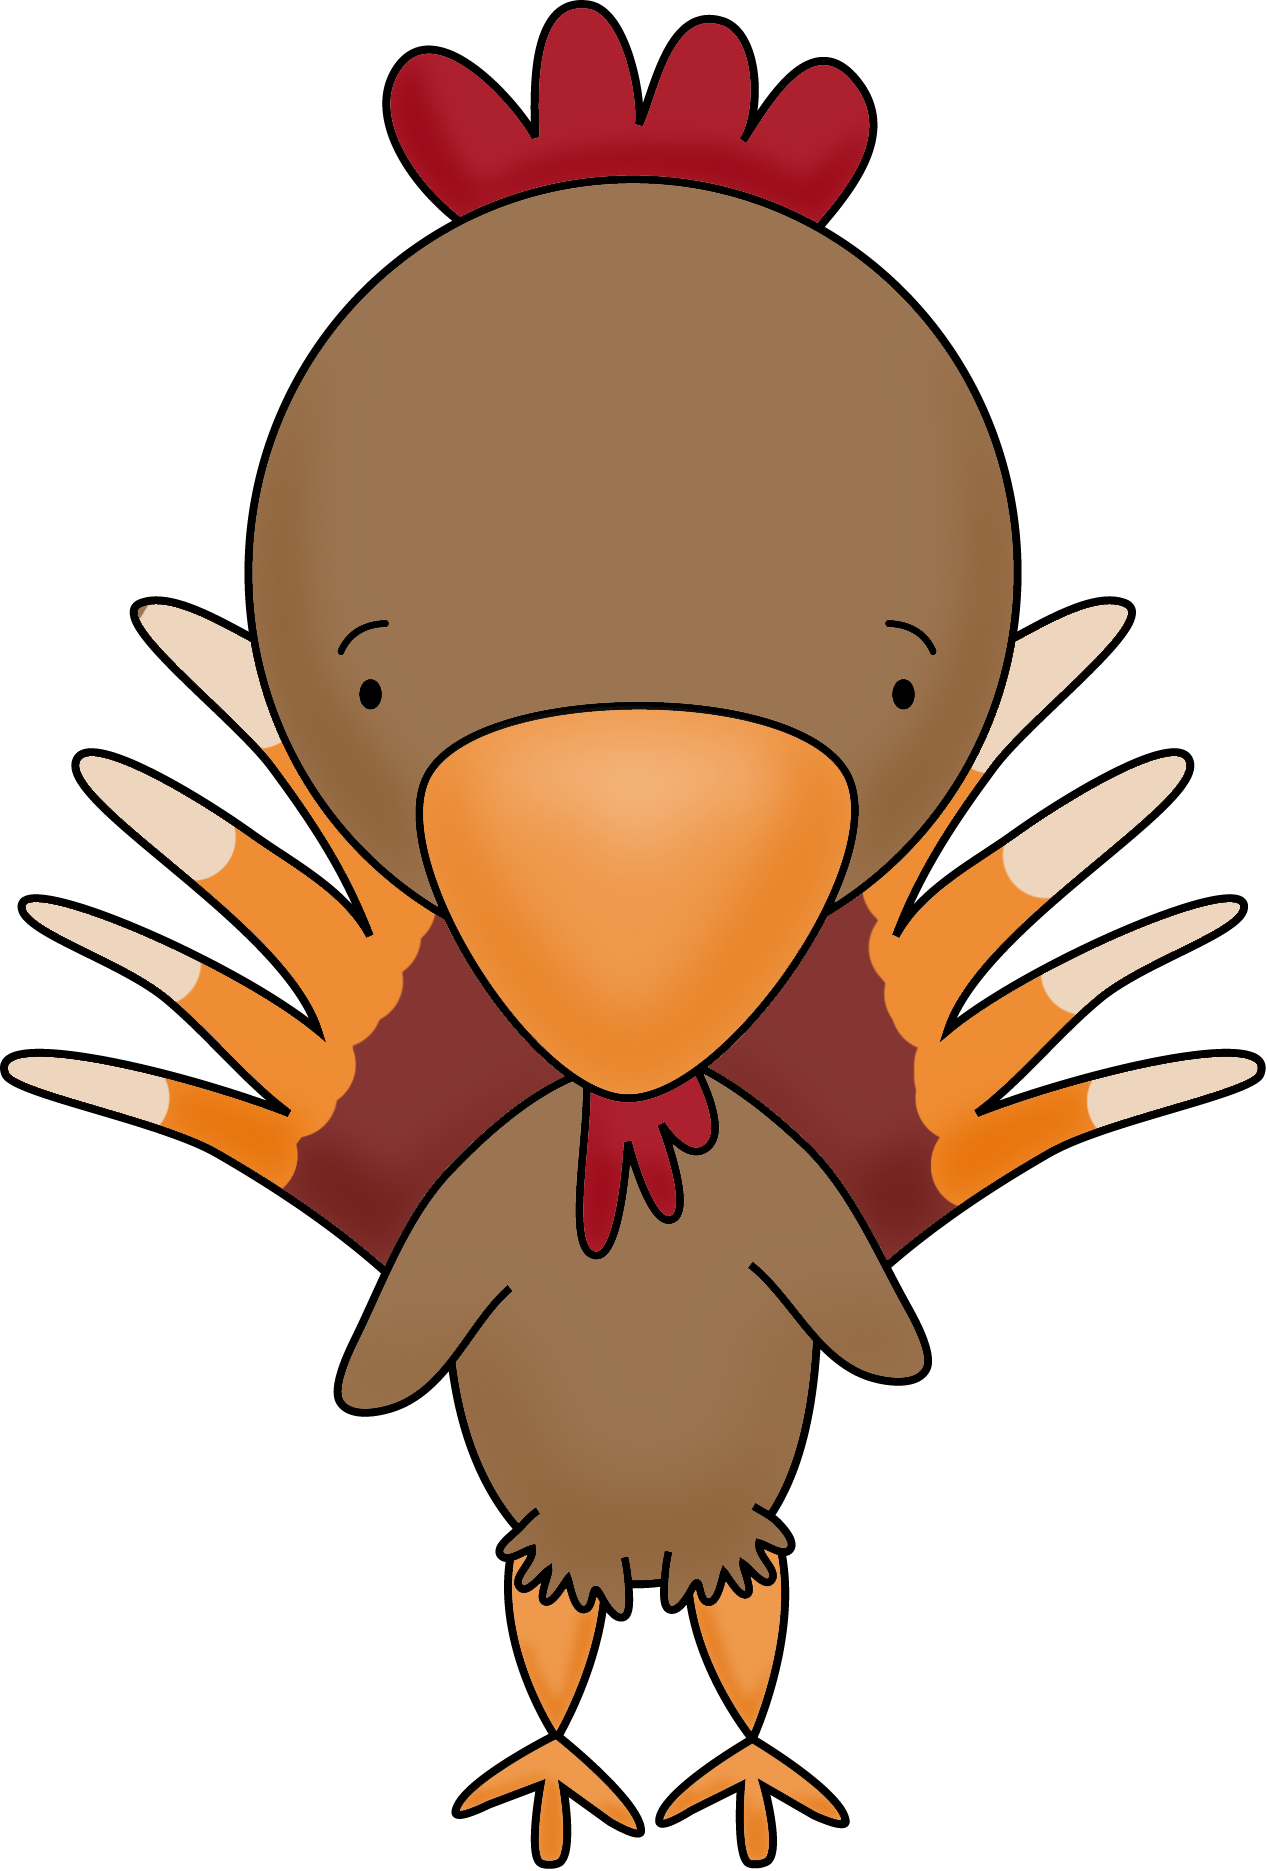 Cute baby turkey clipart svg royalty free stock Turkey Transparent PNG Pictures - Free Icons and PNG Backgrounds svg royalty free stock